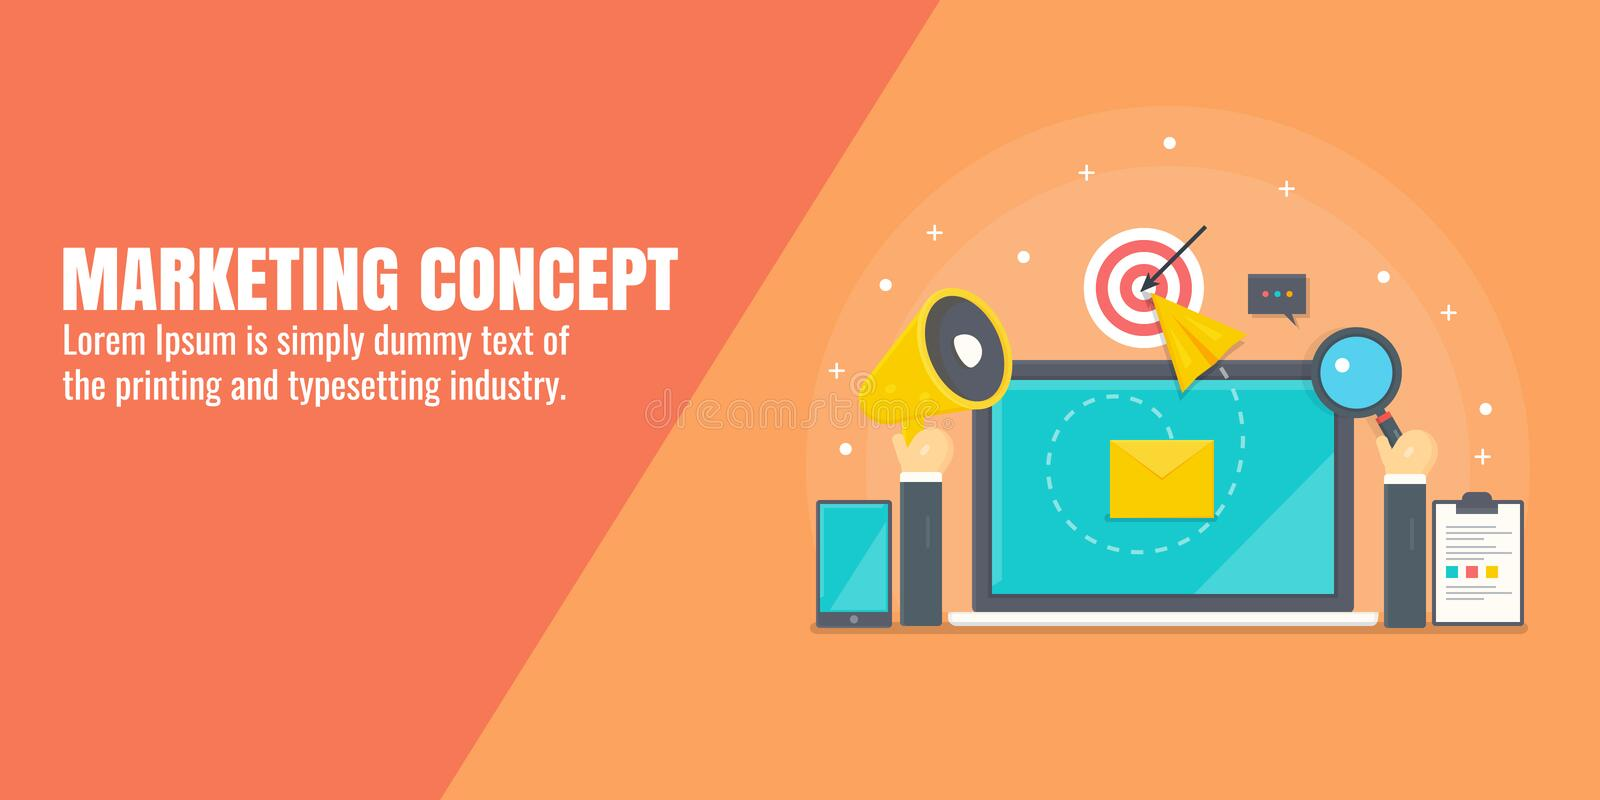 Digital marketing, internet advertising, content promotion, seo, social media marketing concept. Flat design vector banner. royalty free illustration